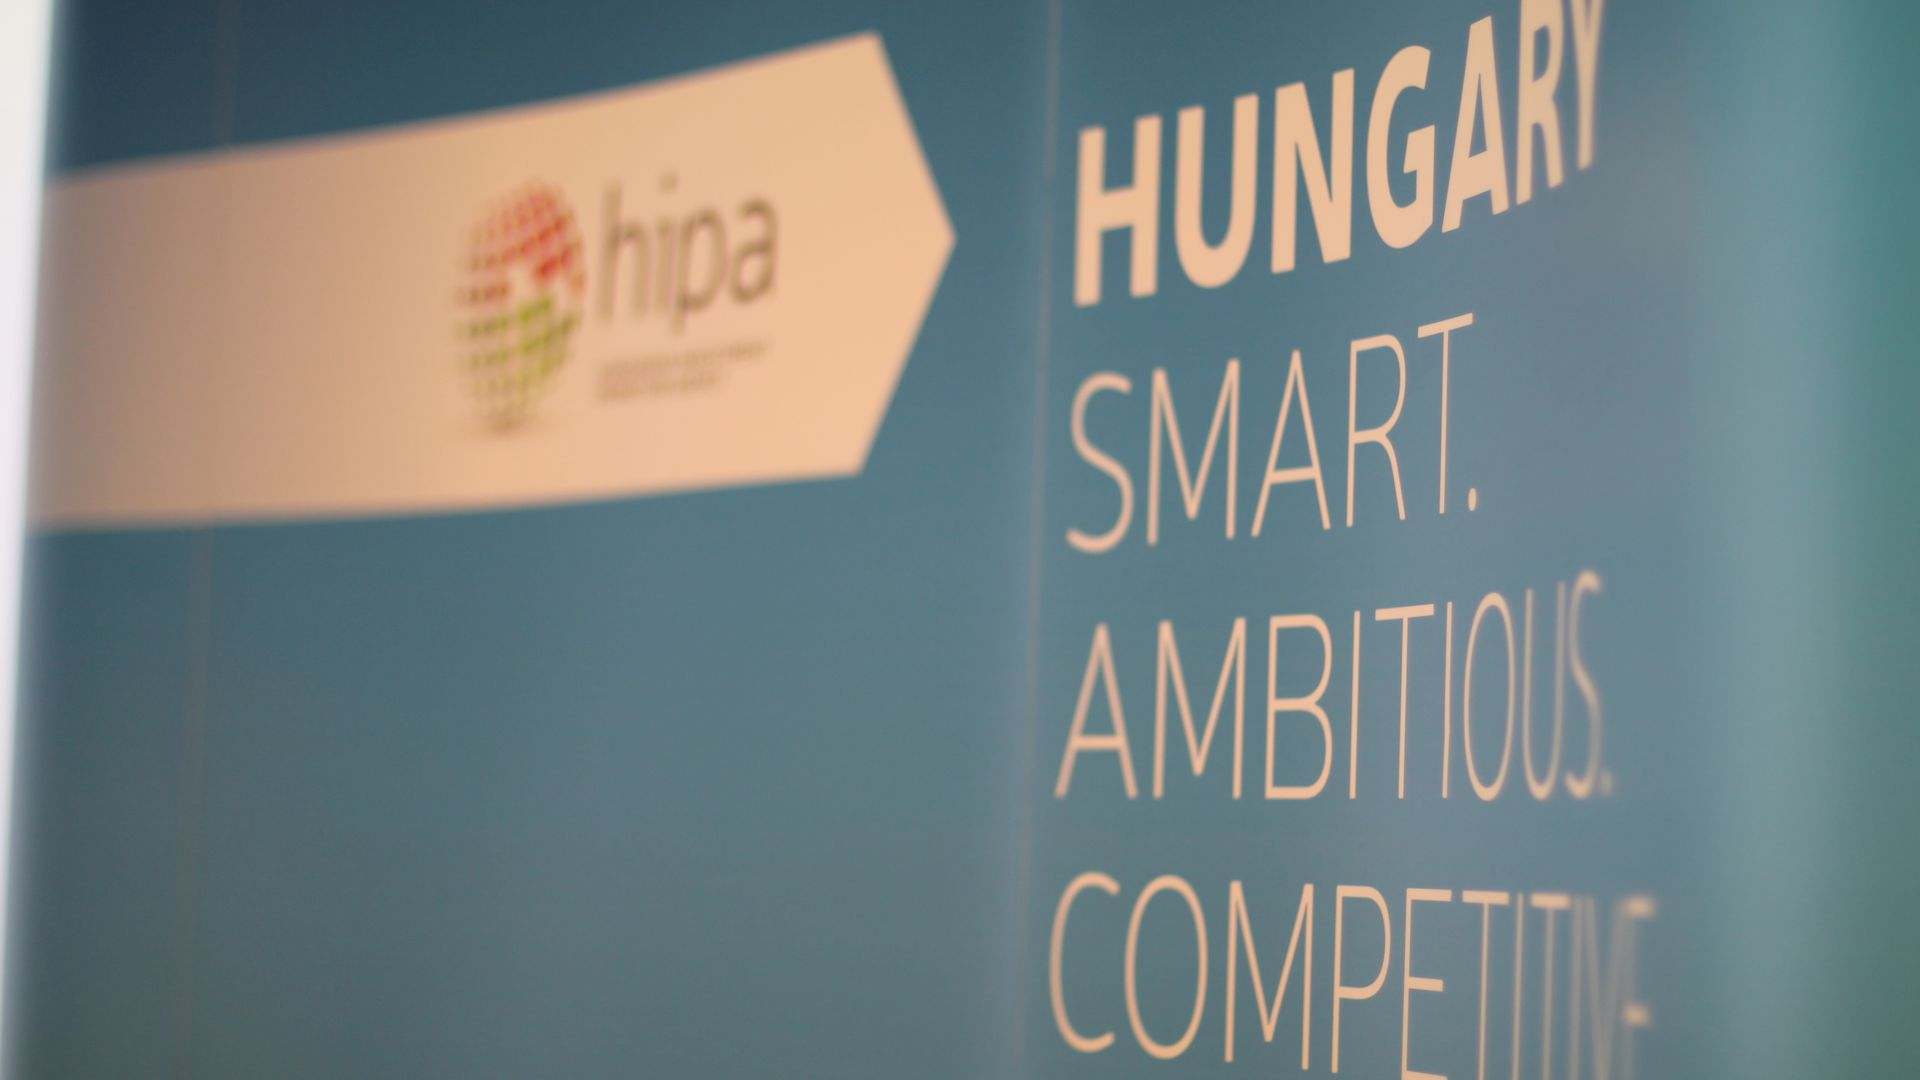 The event was held at the HIPA headquarters